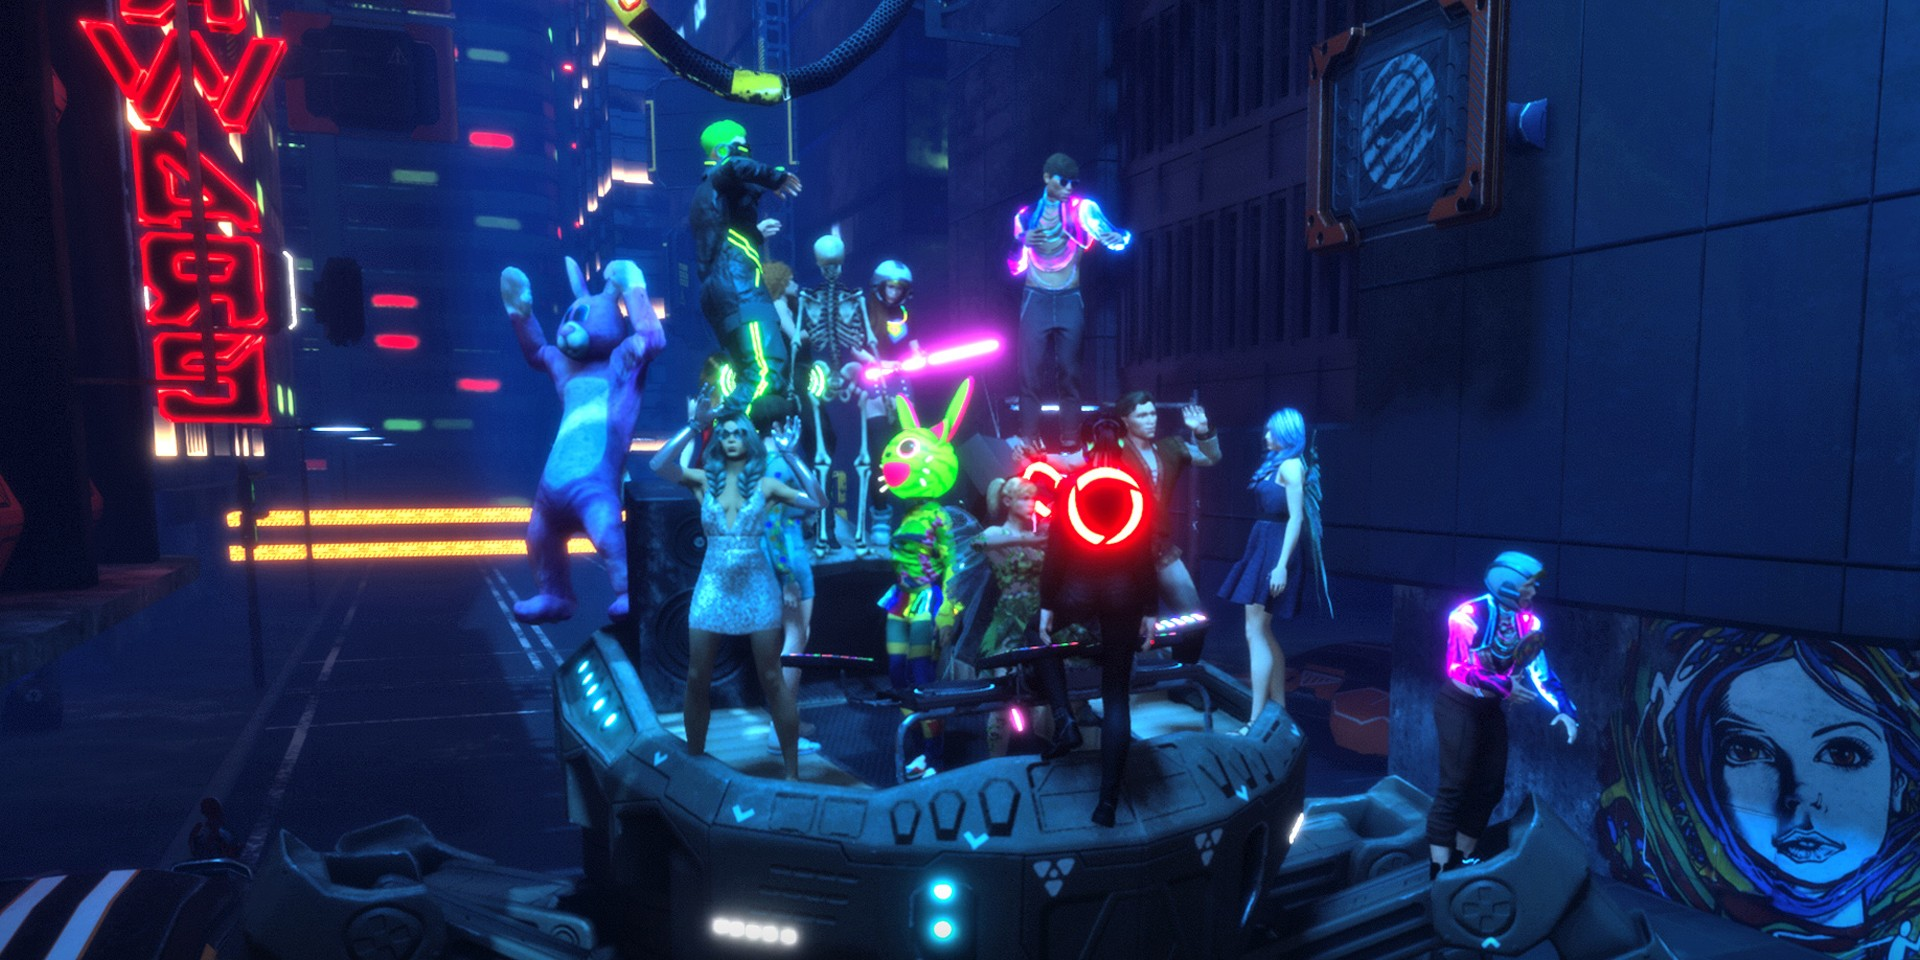 Enter the world of Sansar: Virtually catching concerts in the middle of a global pandemic